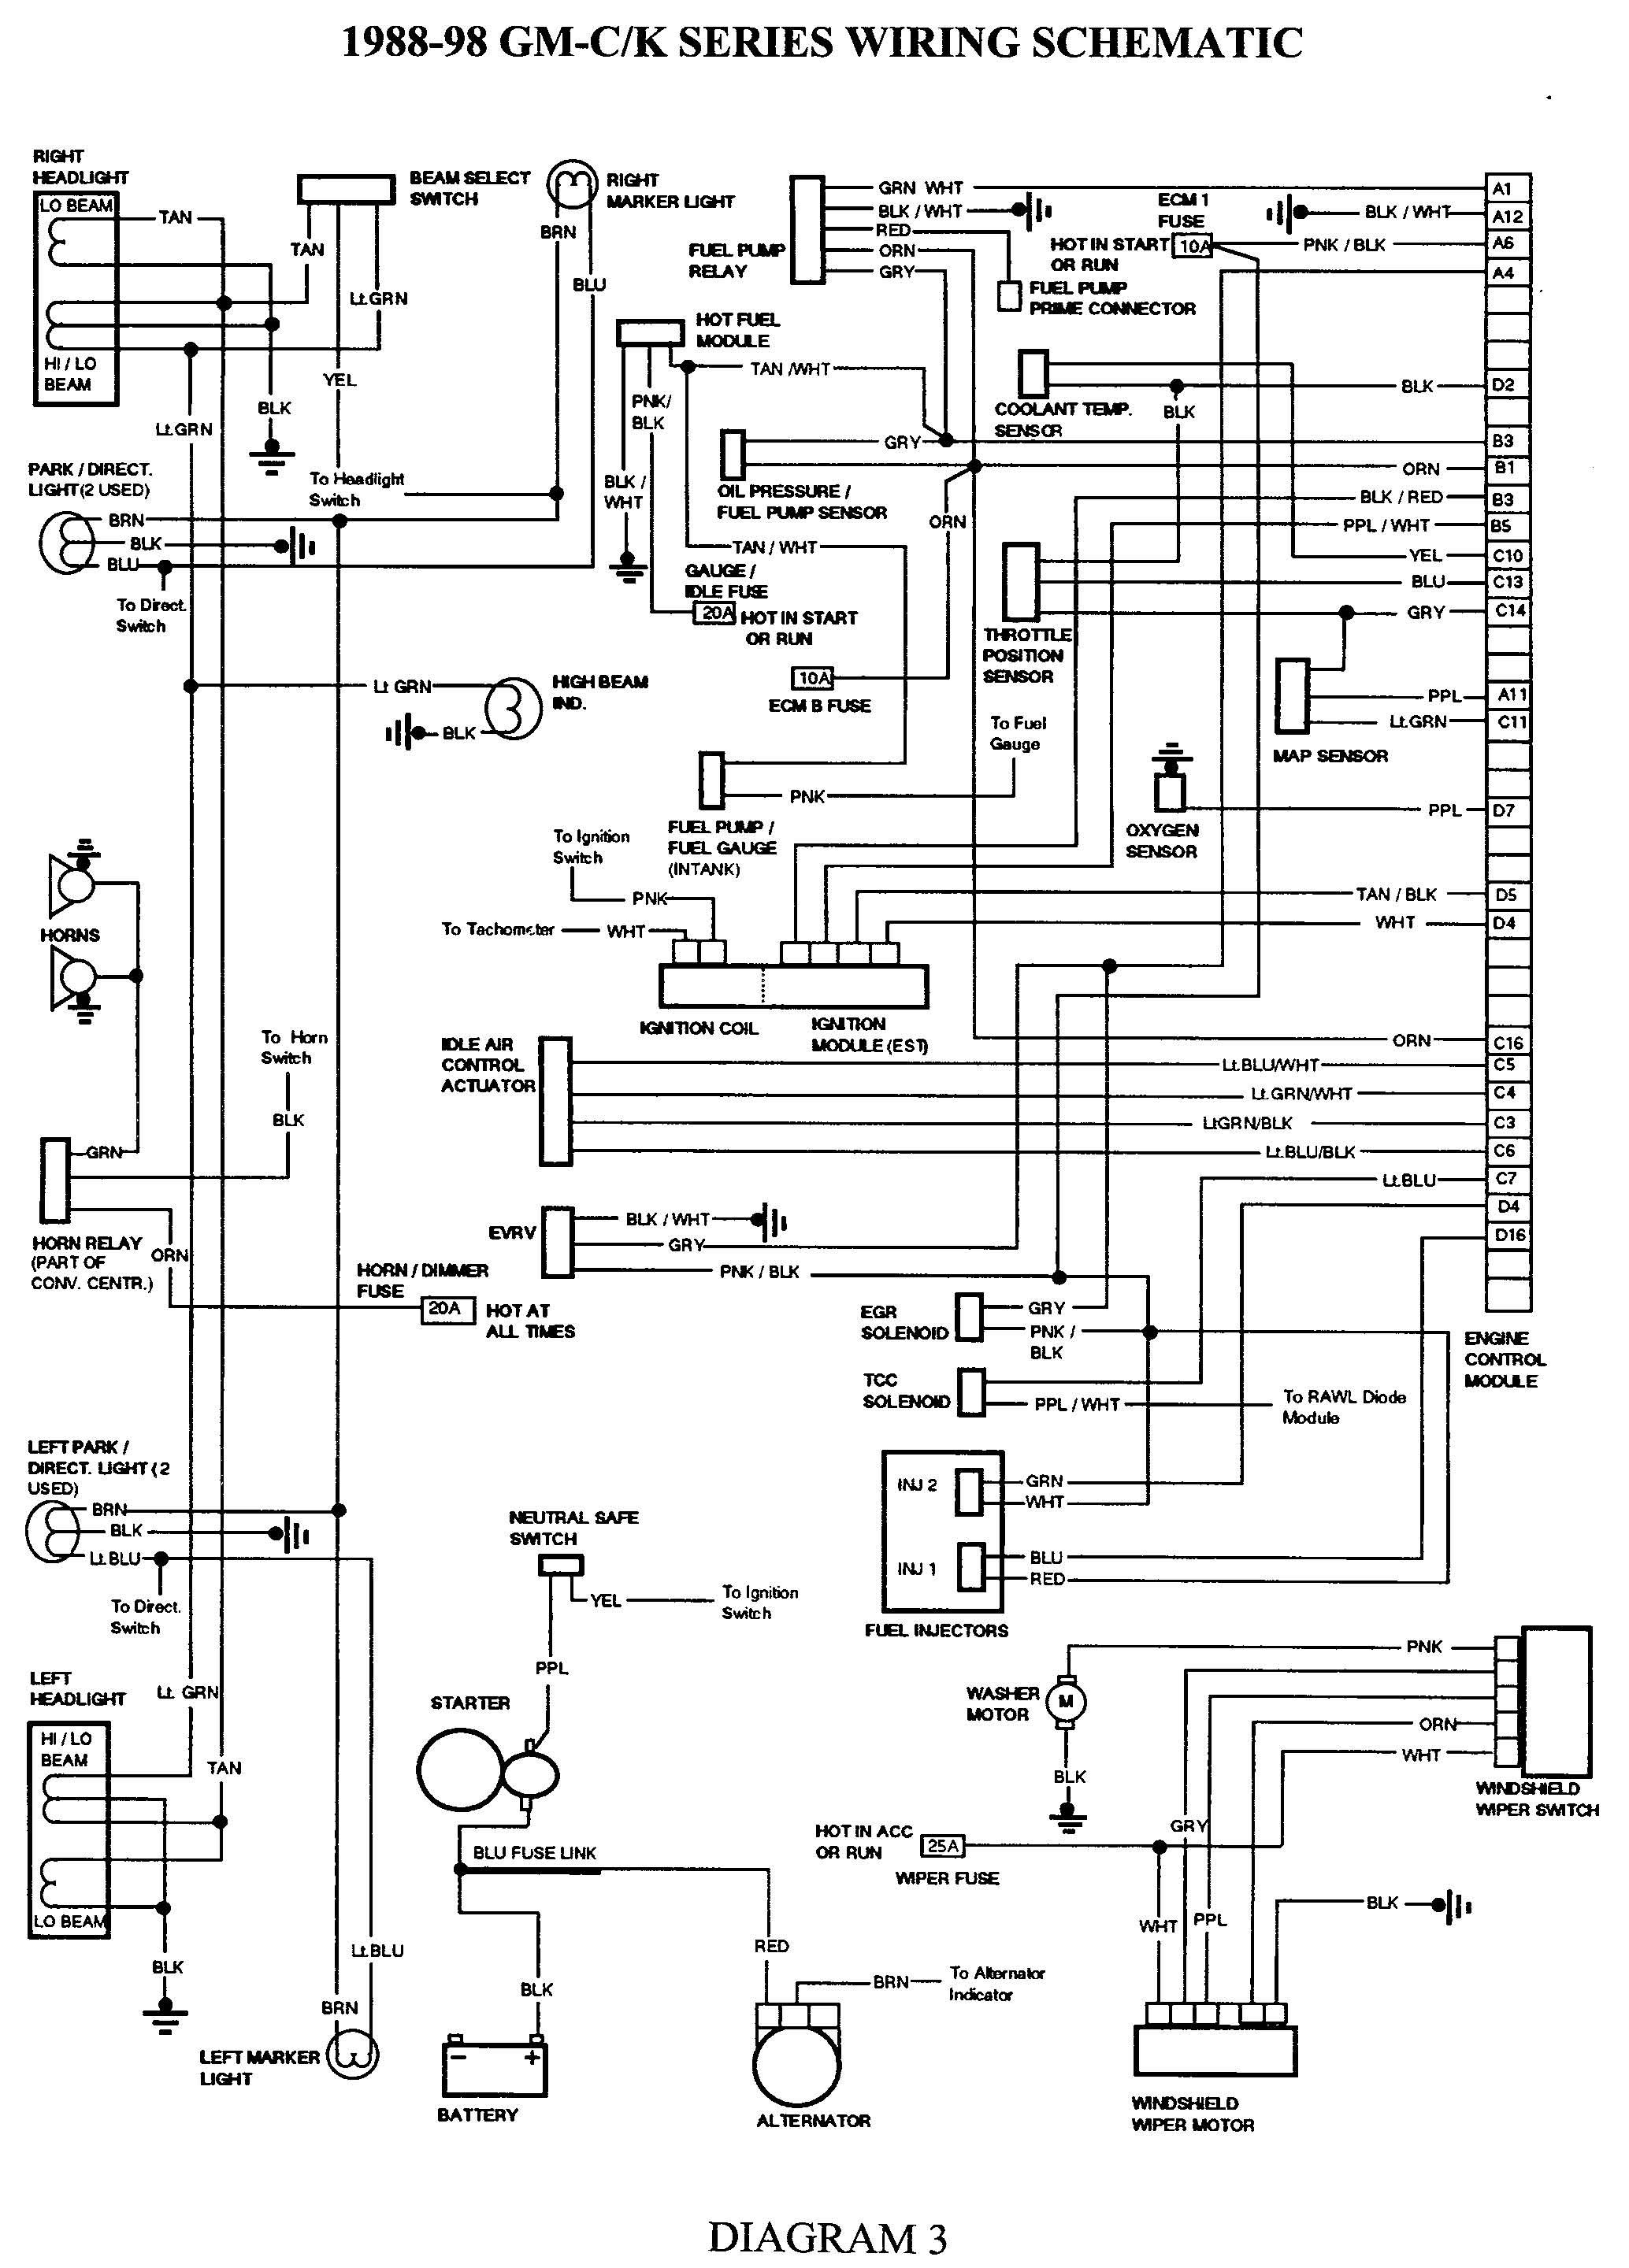 gmc truck wiring diagrams on gm wiring harness diagram 88 98 kc air condition art 1990 chevy air condition electric diagram [ 2068 x 2880 Pixel ]